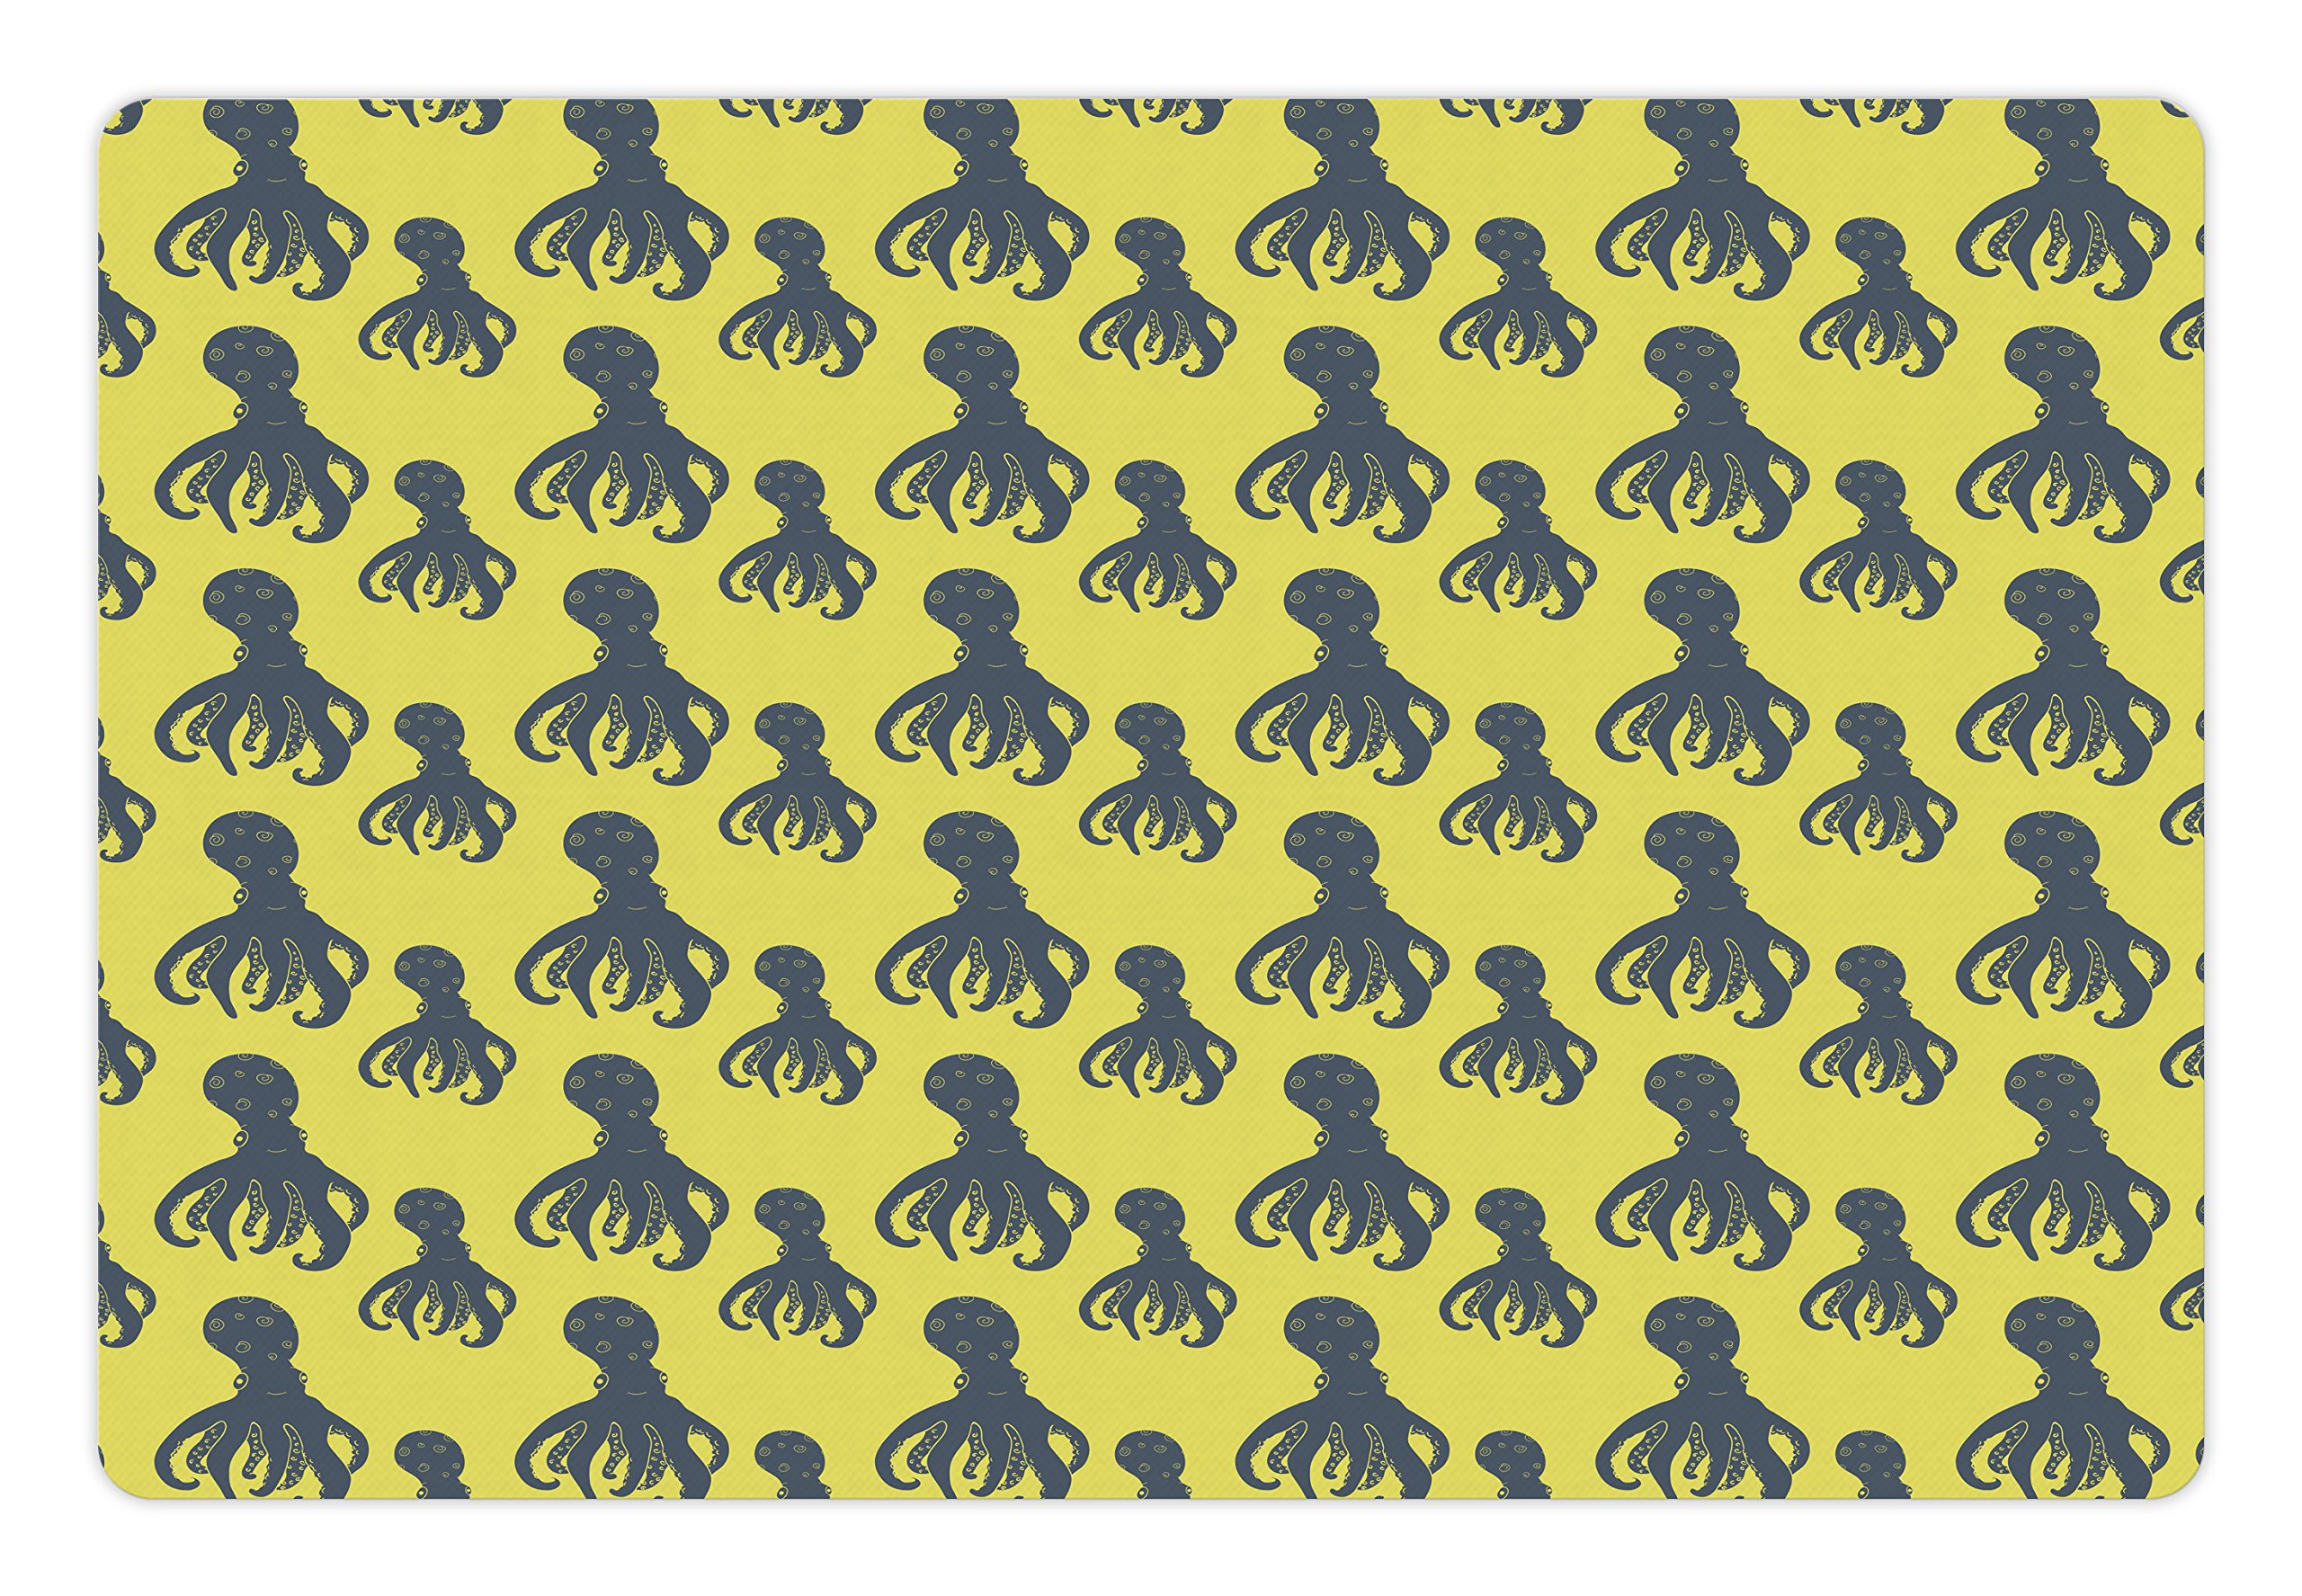 Ambesonne Octopus Pet Mat for Food and Water, Hand Drawn Abstract Marine Underwater Animals on Yellow Background, Rectangle Non-Slip Rubber Mat for Dogs and Cats, Pale Yellow and Cadet Blue